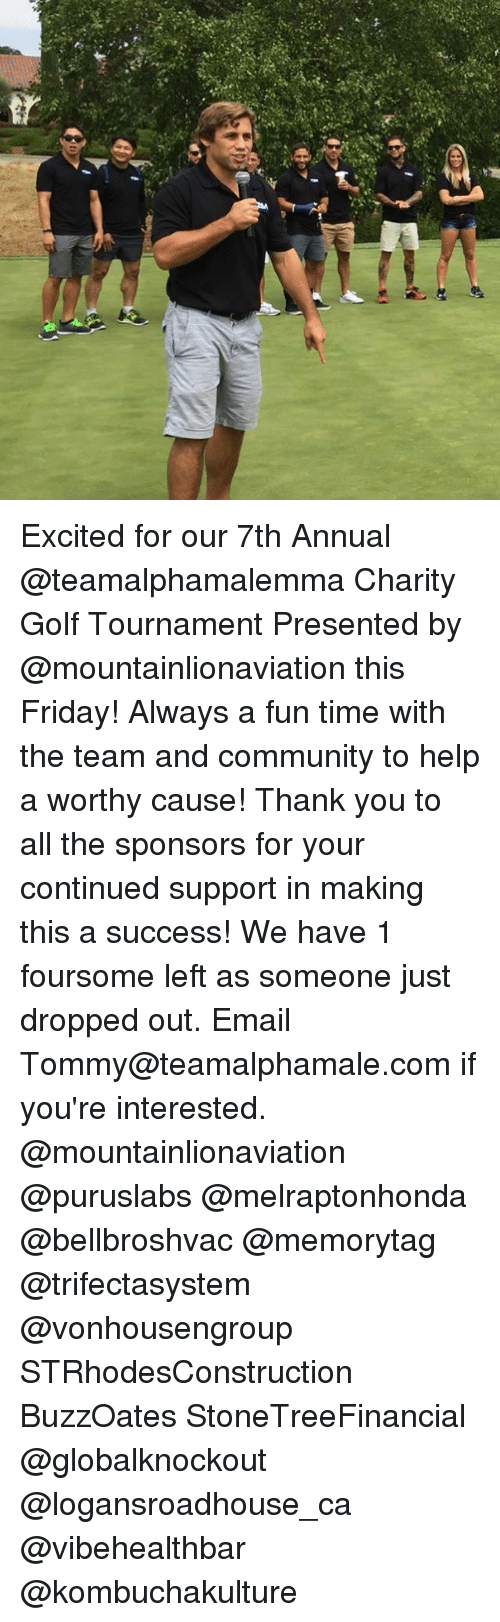 sponsors: Excited for our 7th Annual @teamalphamalemma Charity Golf Tournament Presented by @mountainlionaviation this Friday! Always a fun time with the team and community to help a worthy cause! Thank you to all the sponsors for your continued support in making this a success! We have 1 foursome left as someone just dropped out. Email Tommy@teamalphamale.com if you're interested. @mountainlionaviation @puruslabs @melraptonhonda @bellbroshvac @memorytag @trifectasystem @vonhousengroup STRhodesConstruction BuzzOates StoneTreeFinancial @globalknockout @logansroadhouse_ca @vibehealthbar @kombuchakulture